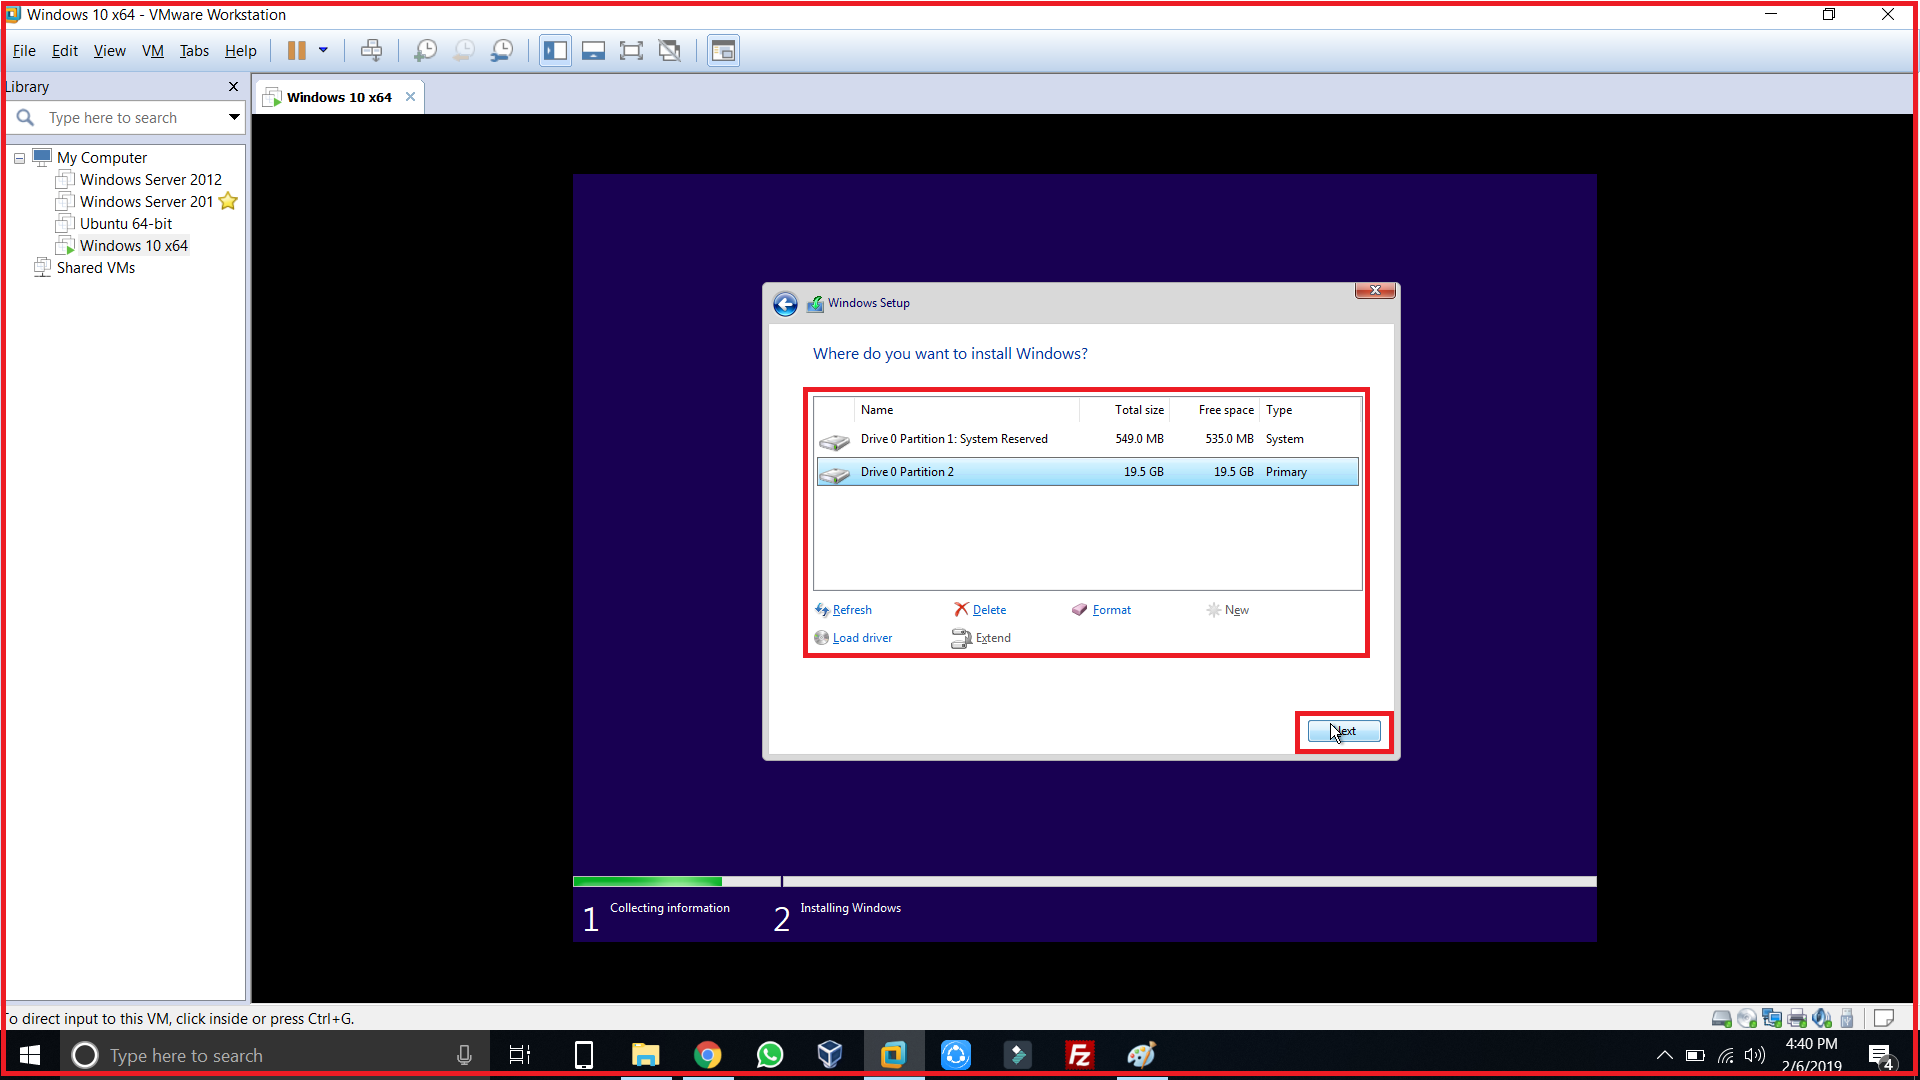 system reserved and partition 2